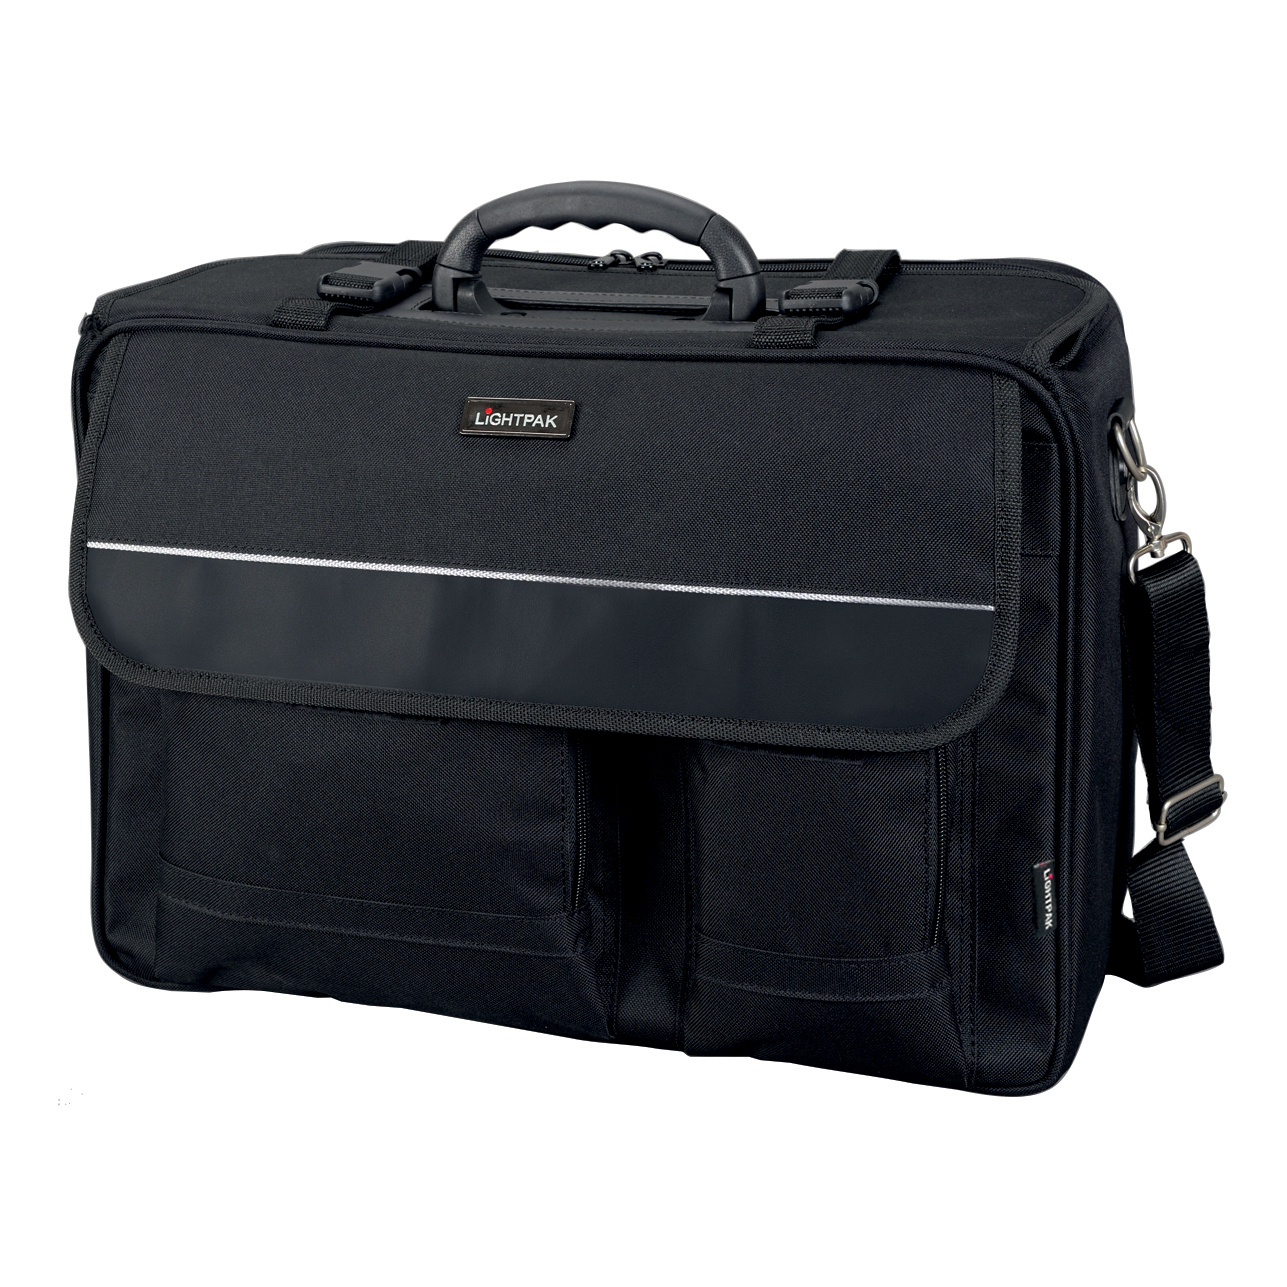 Briefcases & Luggage Lightpak The Flight Pilot Case Overnight Nylon 17in Laptop Compartment Black Ref 46008